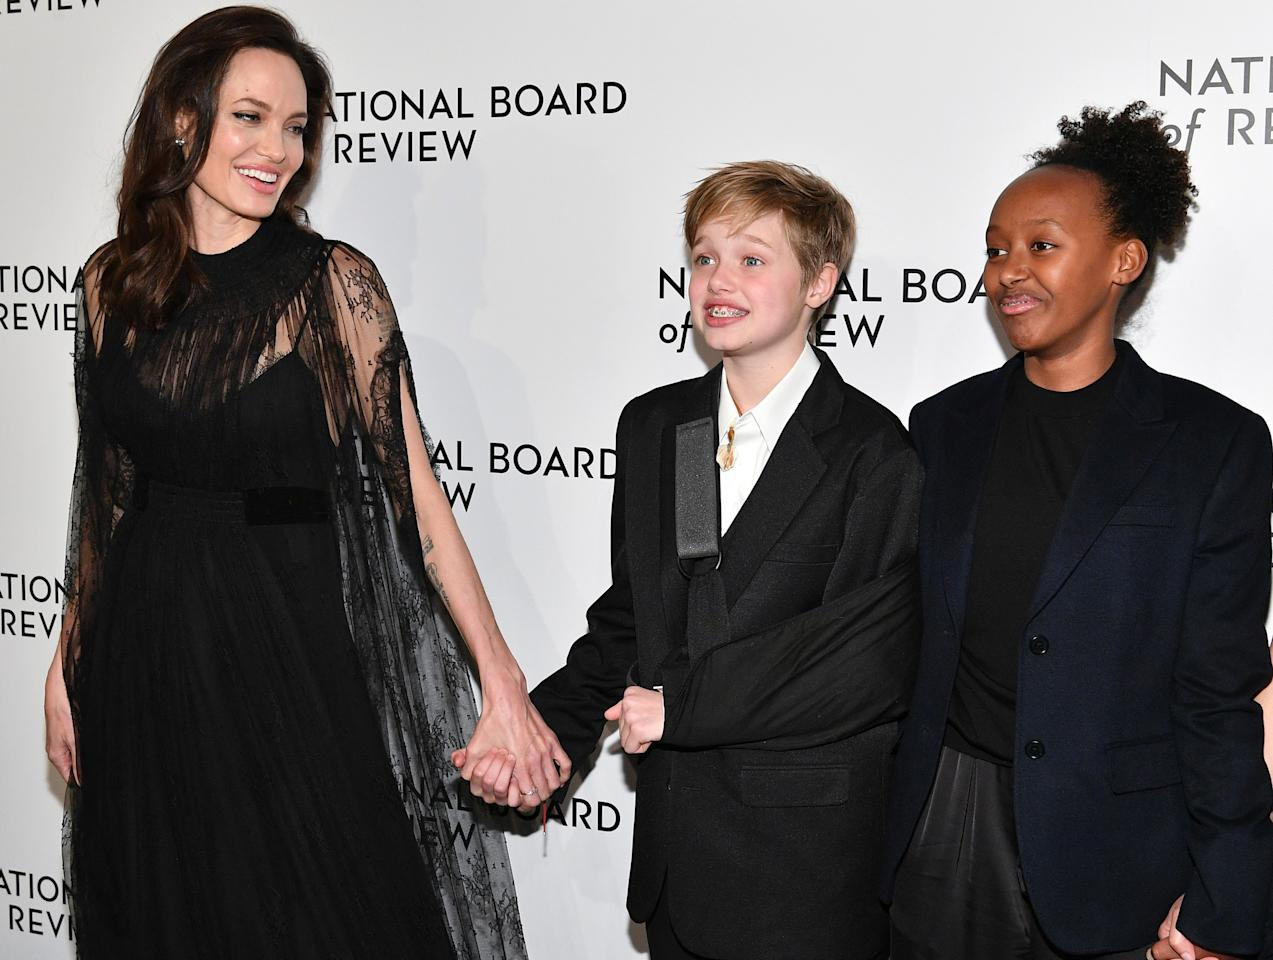 "<p>Angelina brought Shiloh and Zahara to the National Board of Review Awards Gala on Jan. 9, where she accepted the Freedom of Expression Award for her film <em>First They Killed My Father. </em>Shiloh sported a sling after her <a rel=""nofollow"" href=""https://www.yahoo.com/lifestyle/angelina-jolie-apos-daughter-shiloh-134711903.html"">recent snowboarding accident</a>. (Photo: Dia Dipasupil/FilmMagic) </p>"